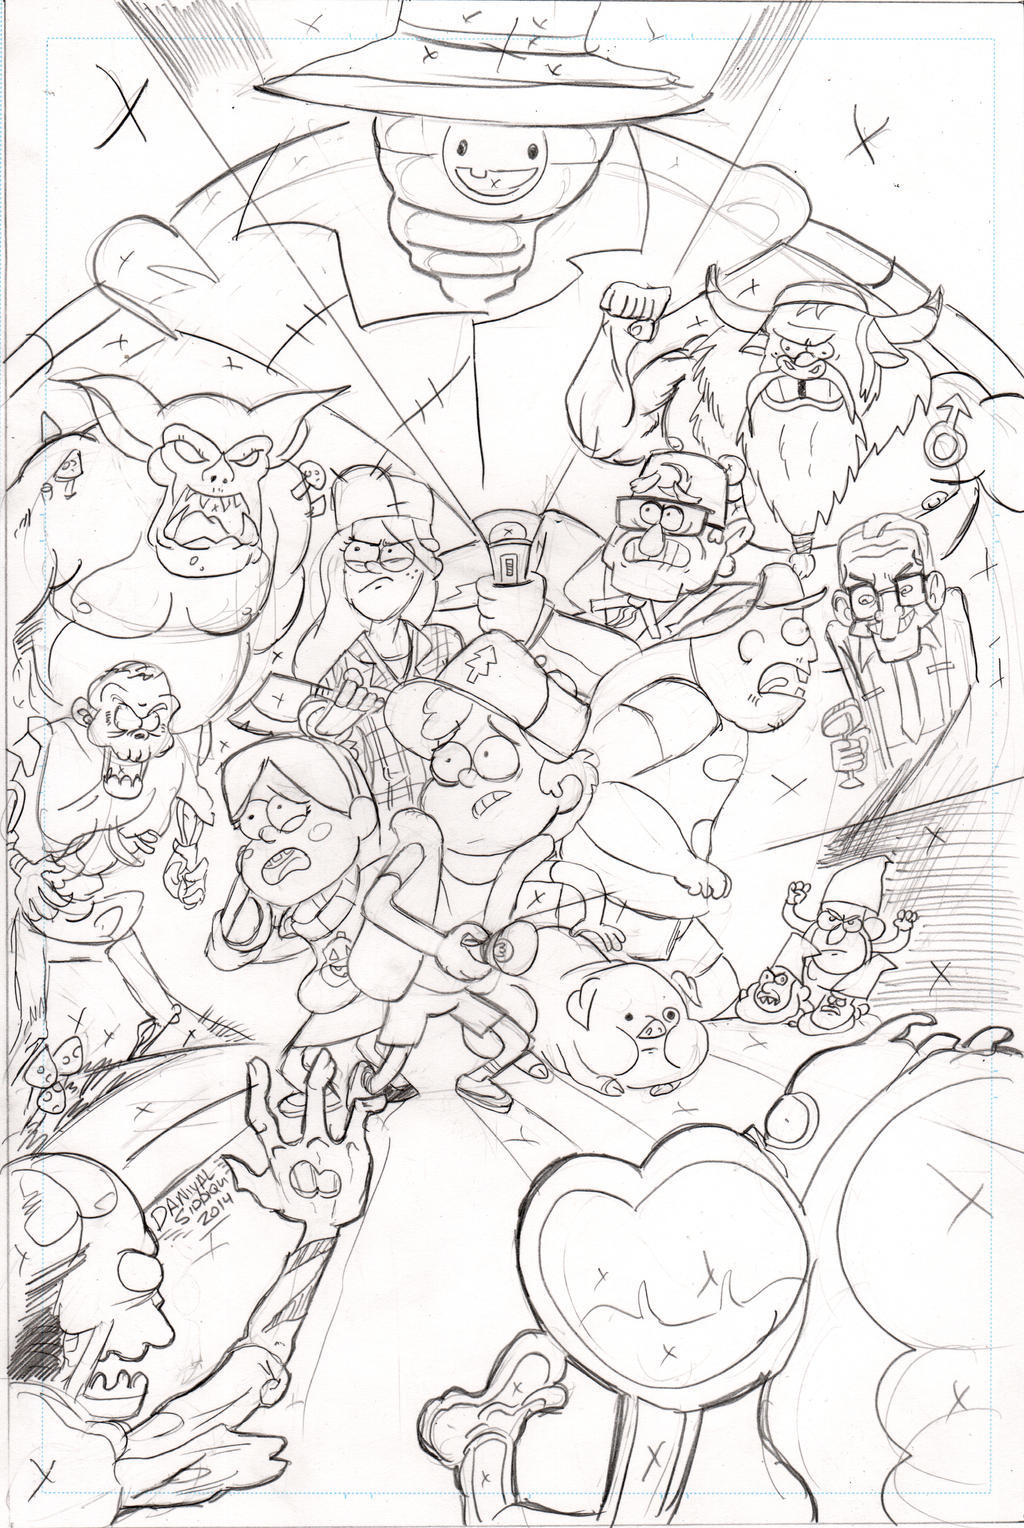 Coloring pages gravity falls -  Misterlegendary Gravity Falls Pencils Rush Job By Misterlegendary